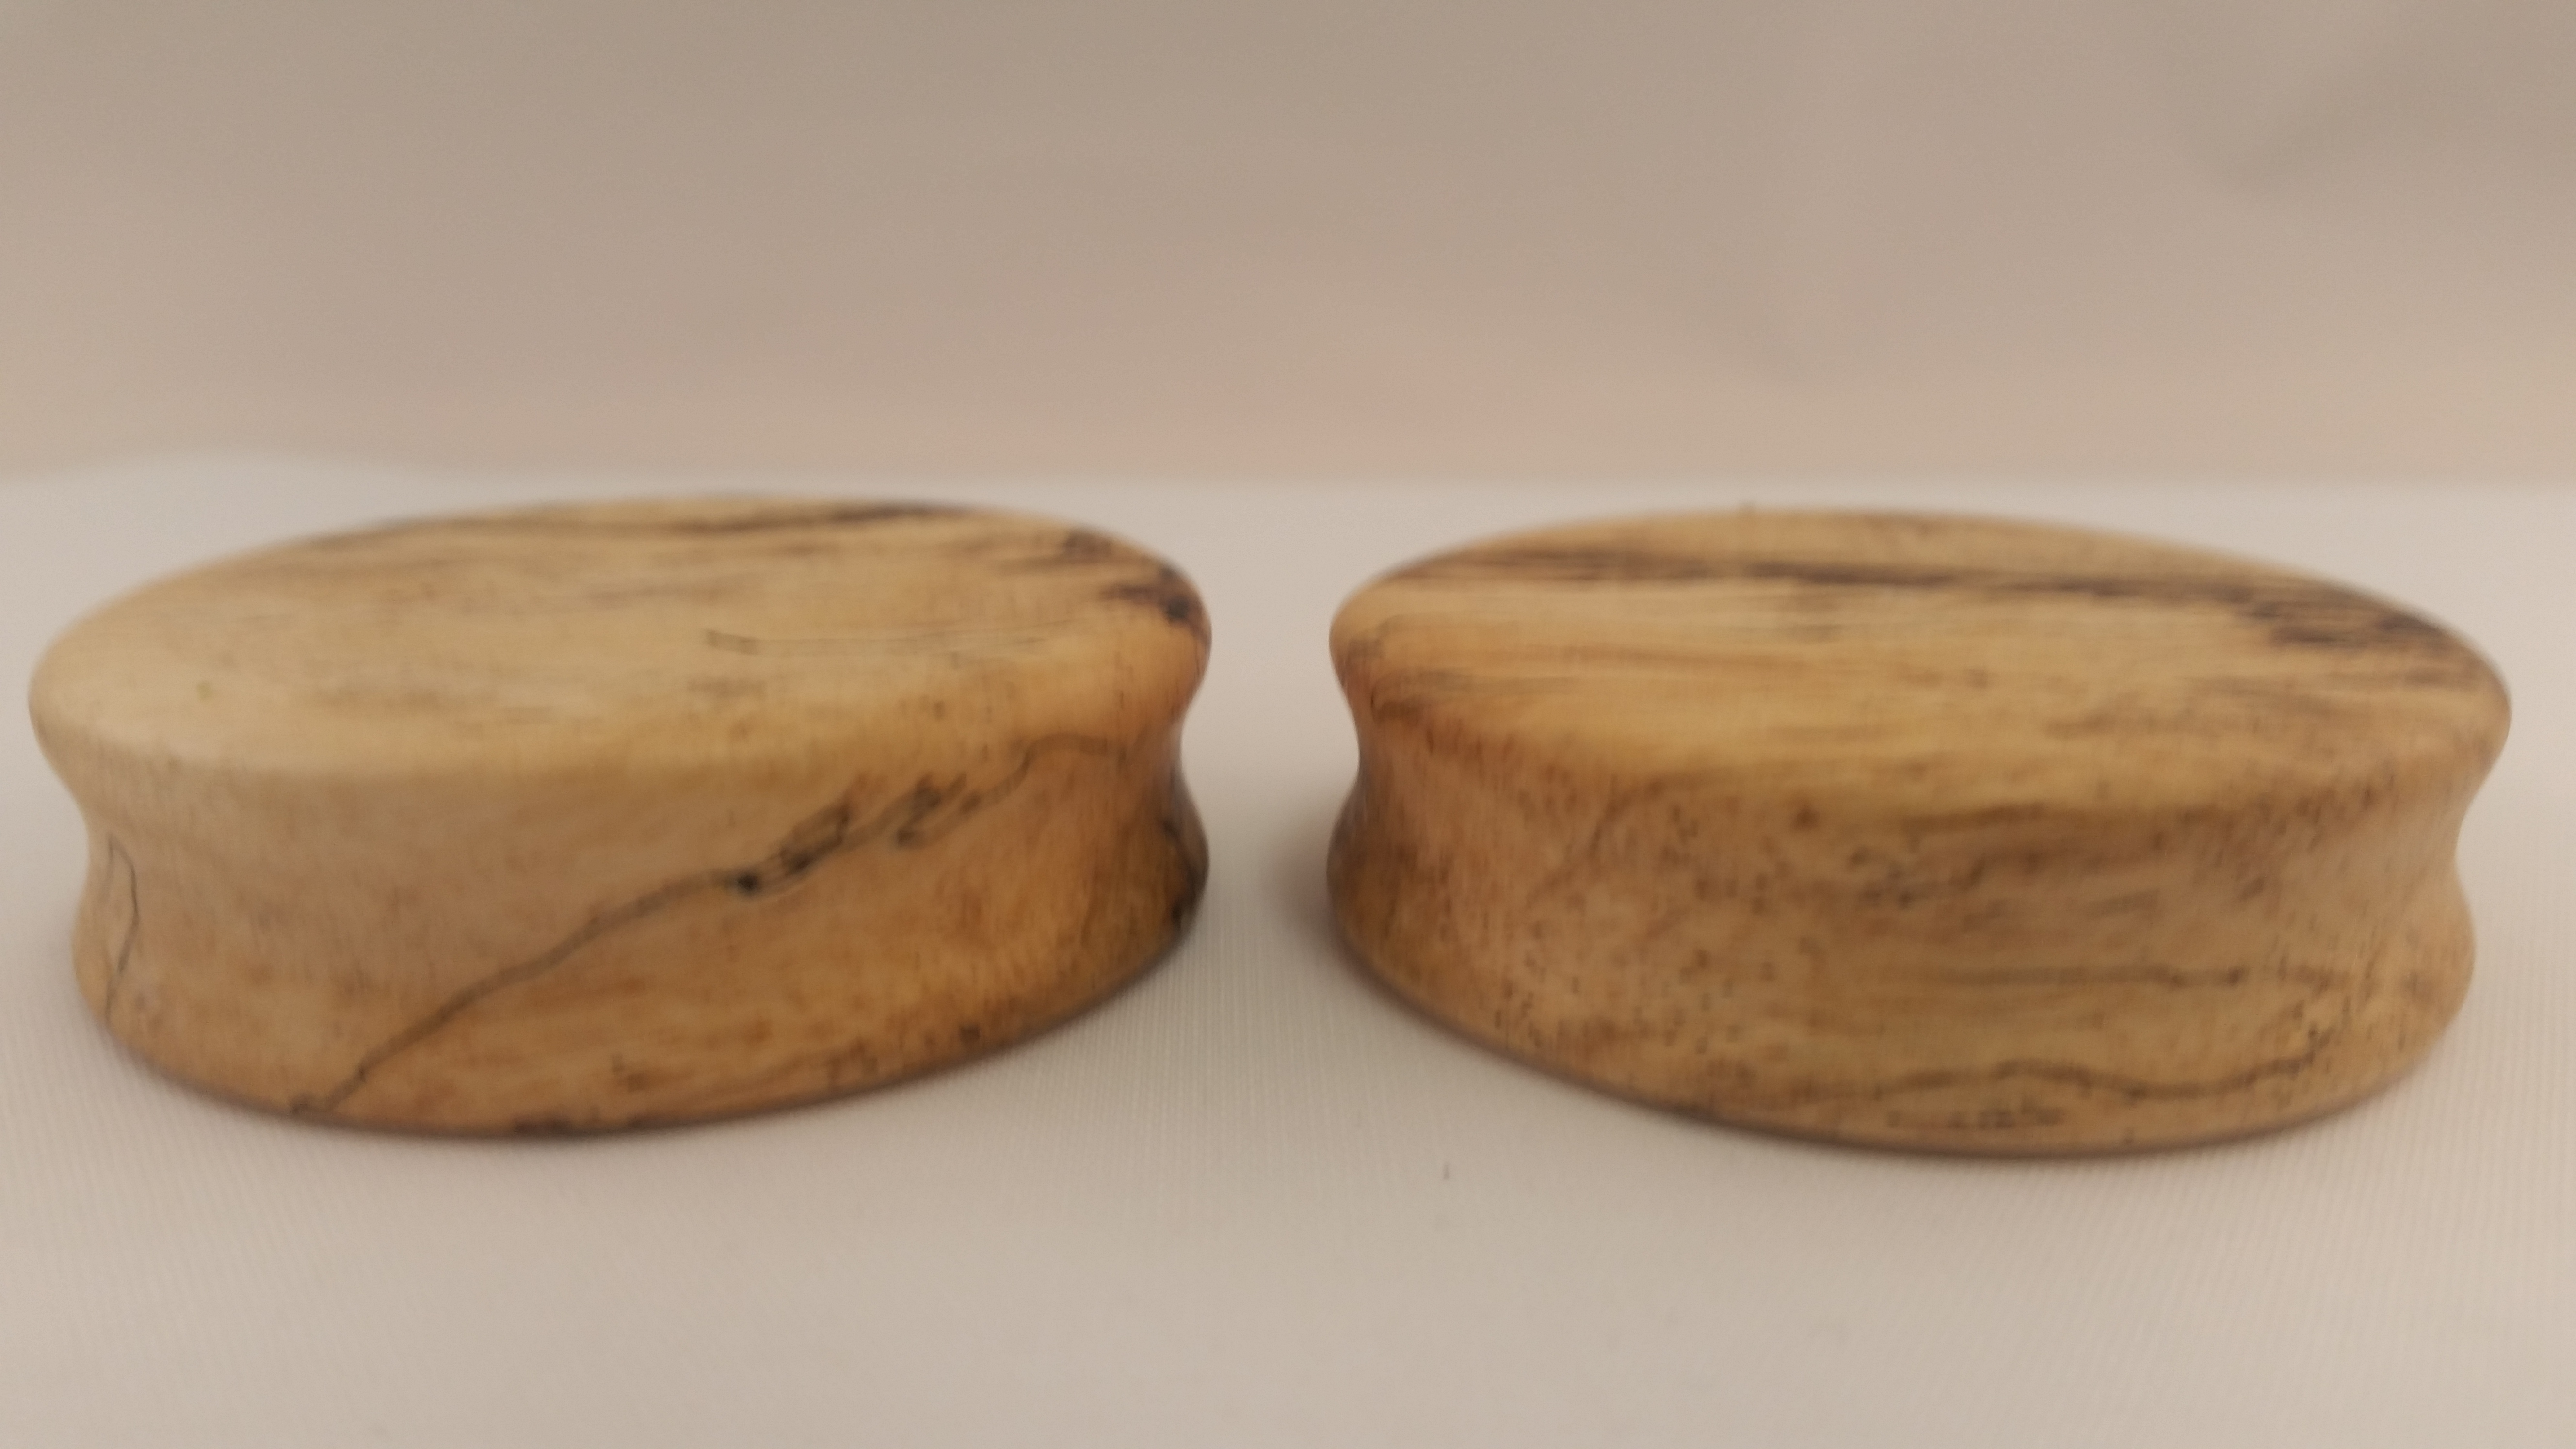 Spalted tamarind wood plugs 1 7 8 wingnut tattoo and for Tattoo shops in st cloud mn